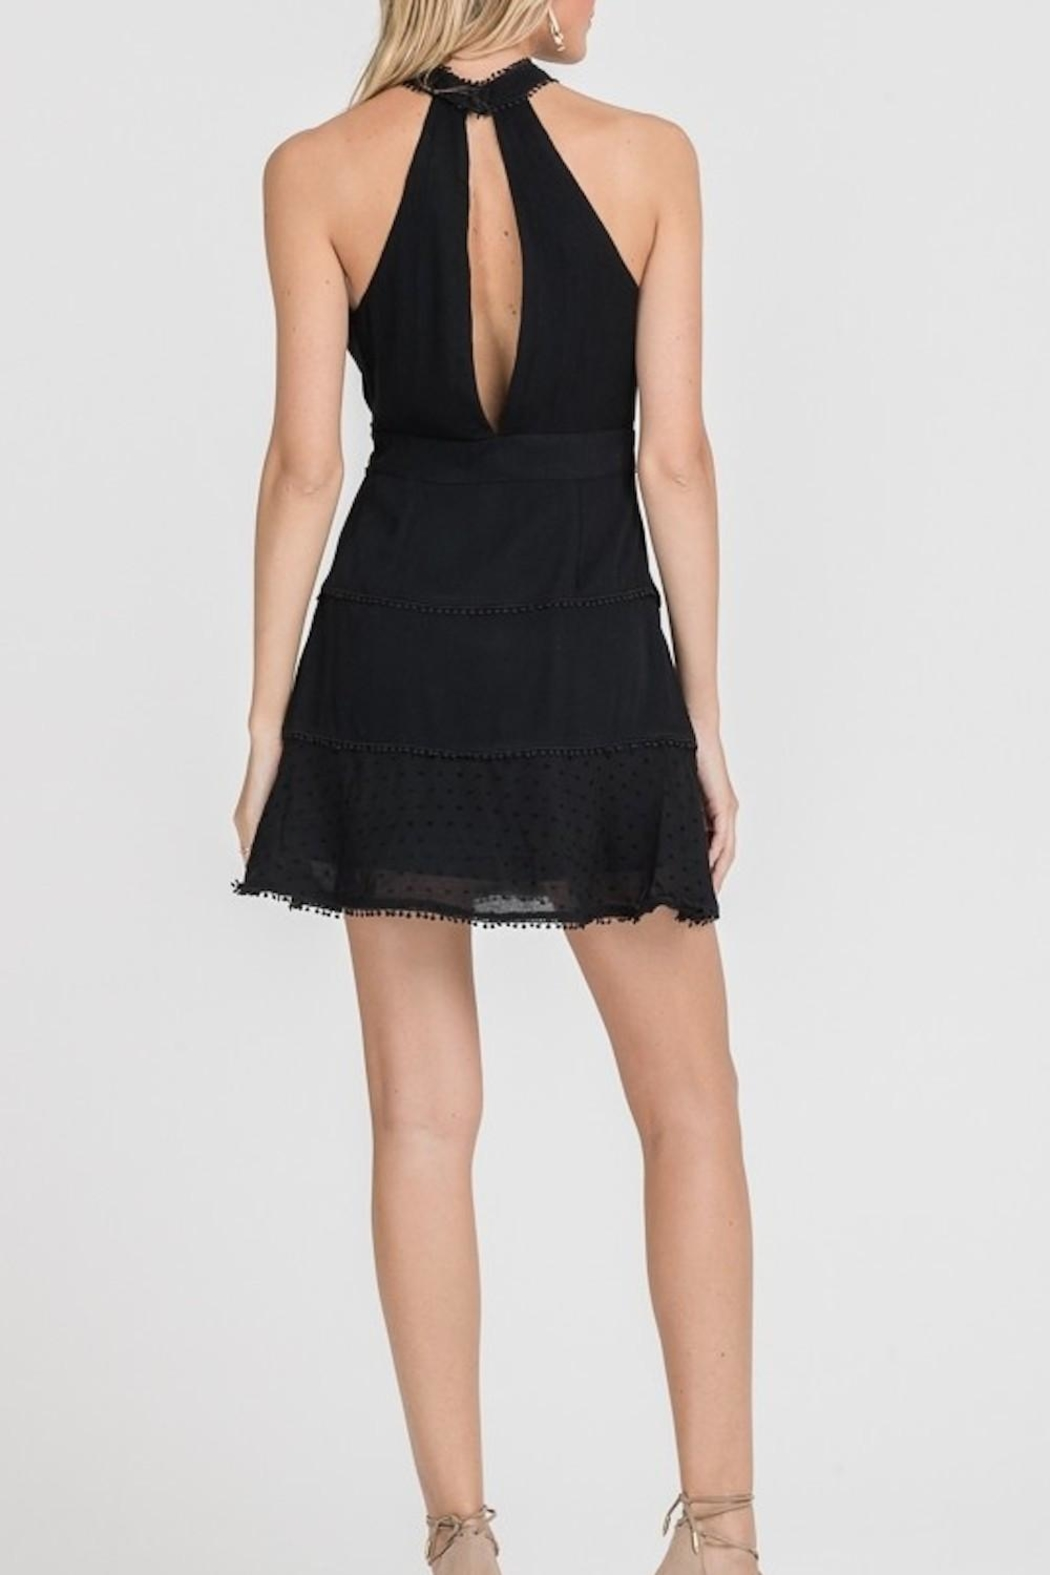 Lush Clothing  High-Neck Mini Dress - Side Cropped Image